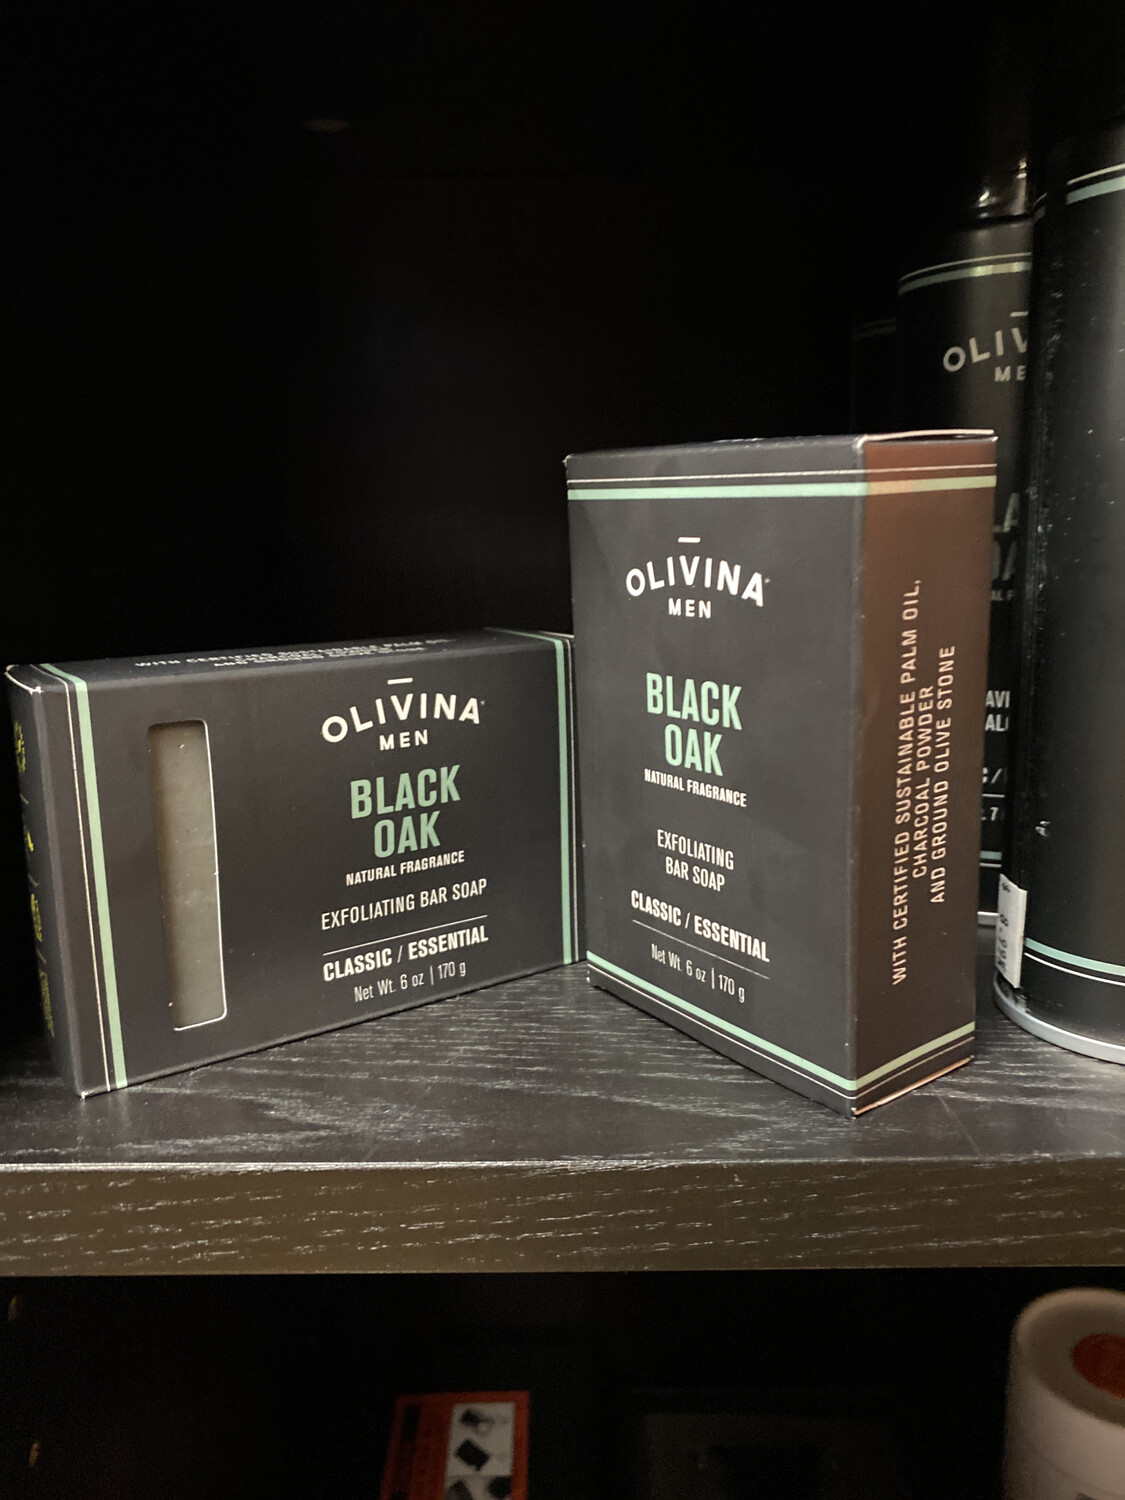 Olivina Men Black Oak Soap